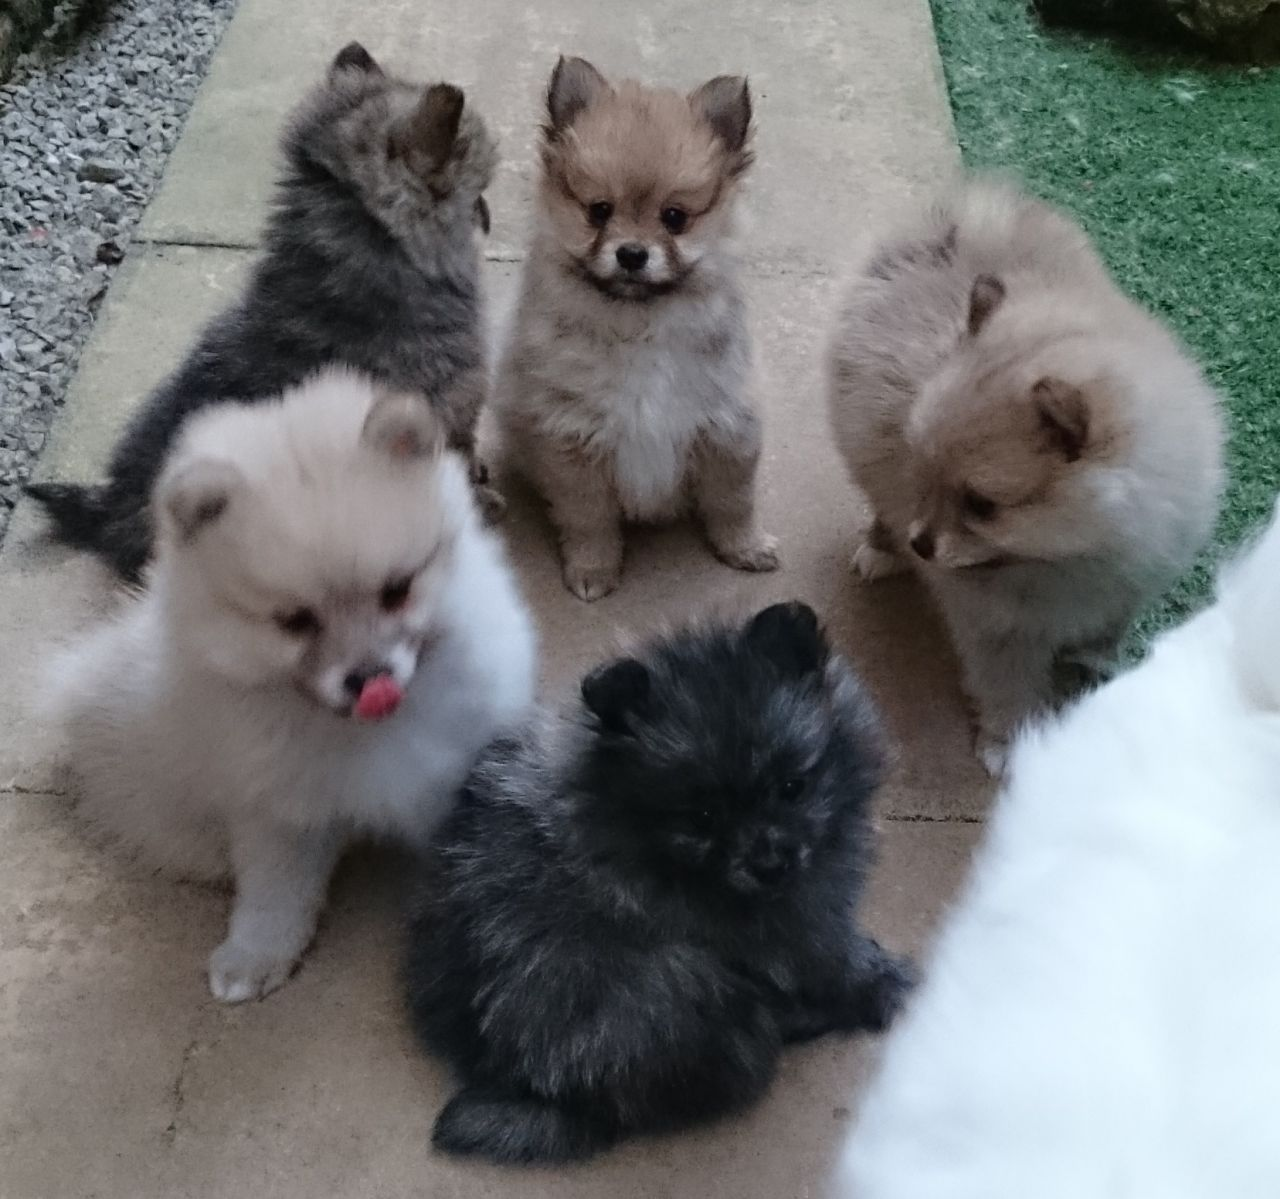 Rare Pomeranian Colors Pomeranian Puppies 1 Cream Rare Color 1 Orange Sable For Sale Adoption Pomeranian Breed Pomeranian Puppy Puppies